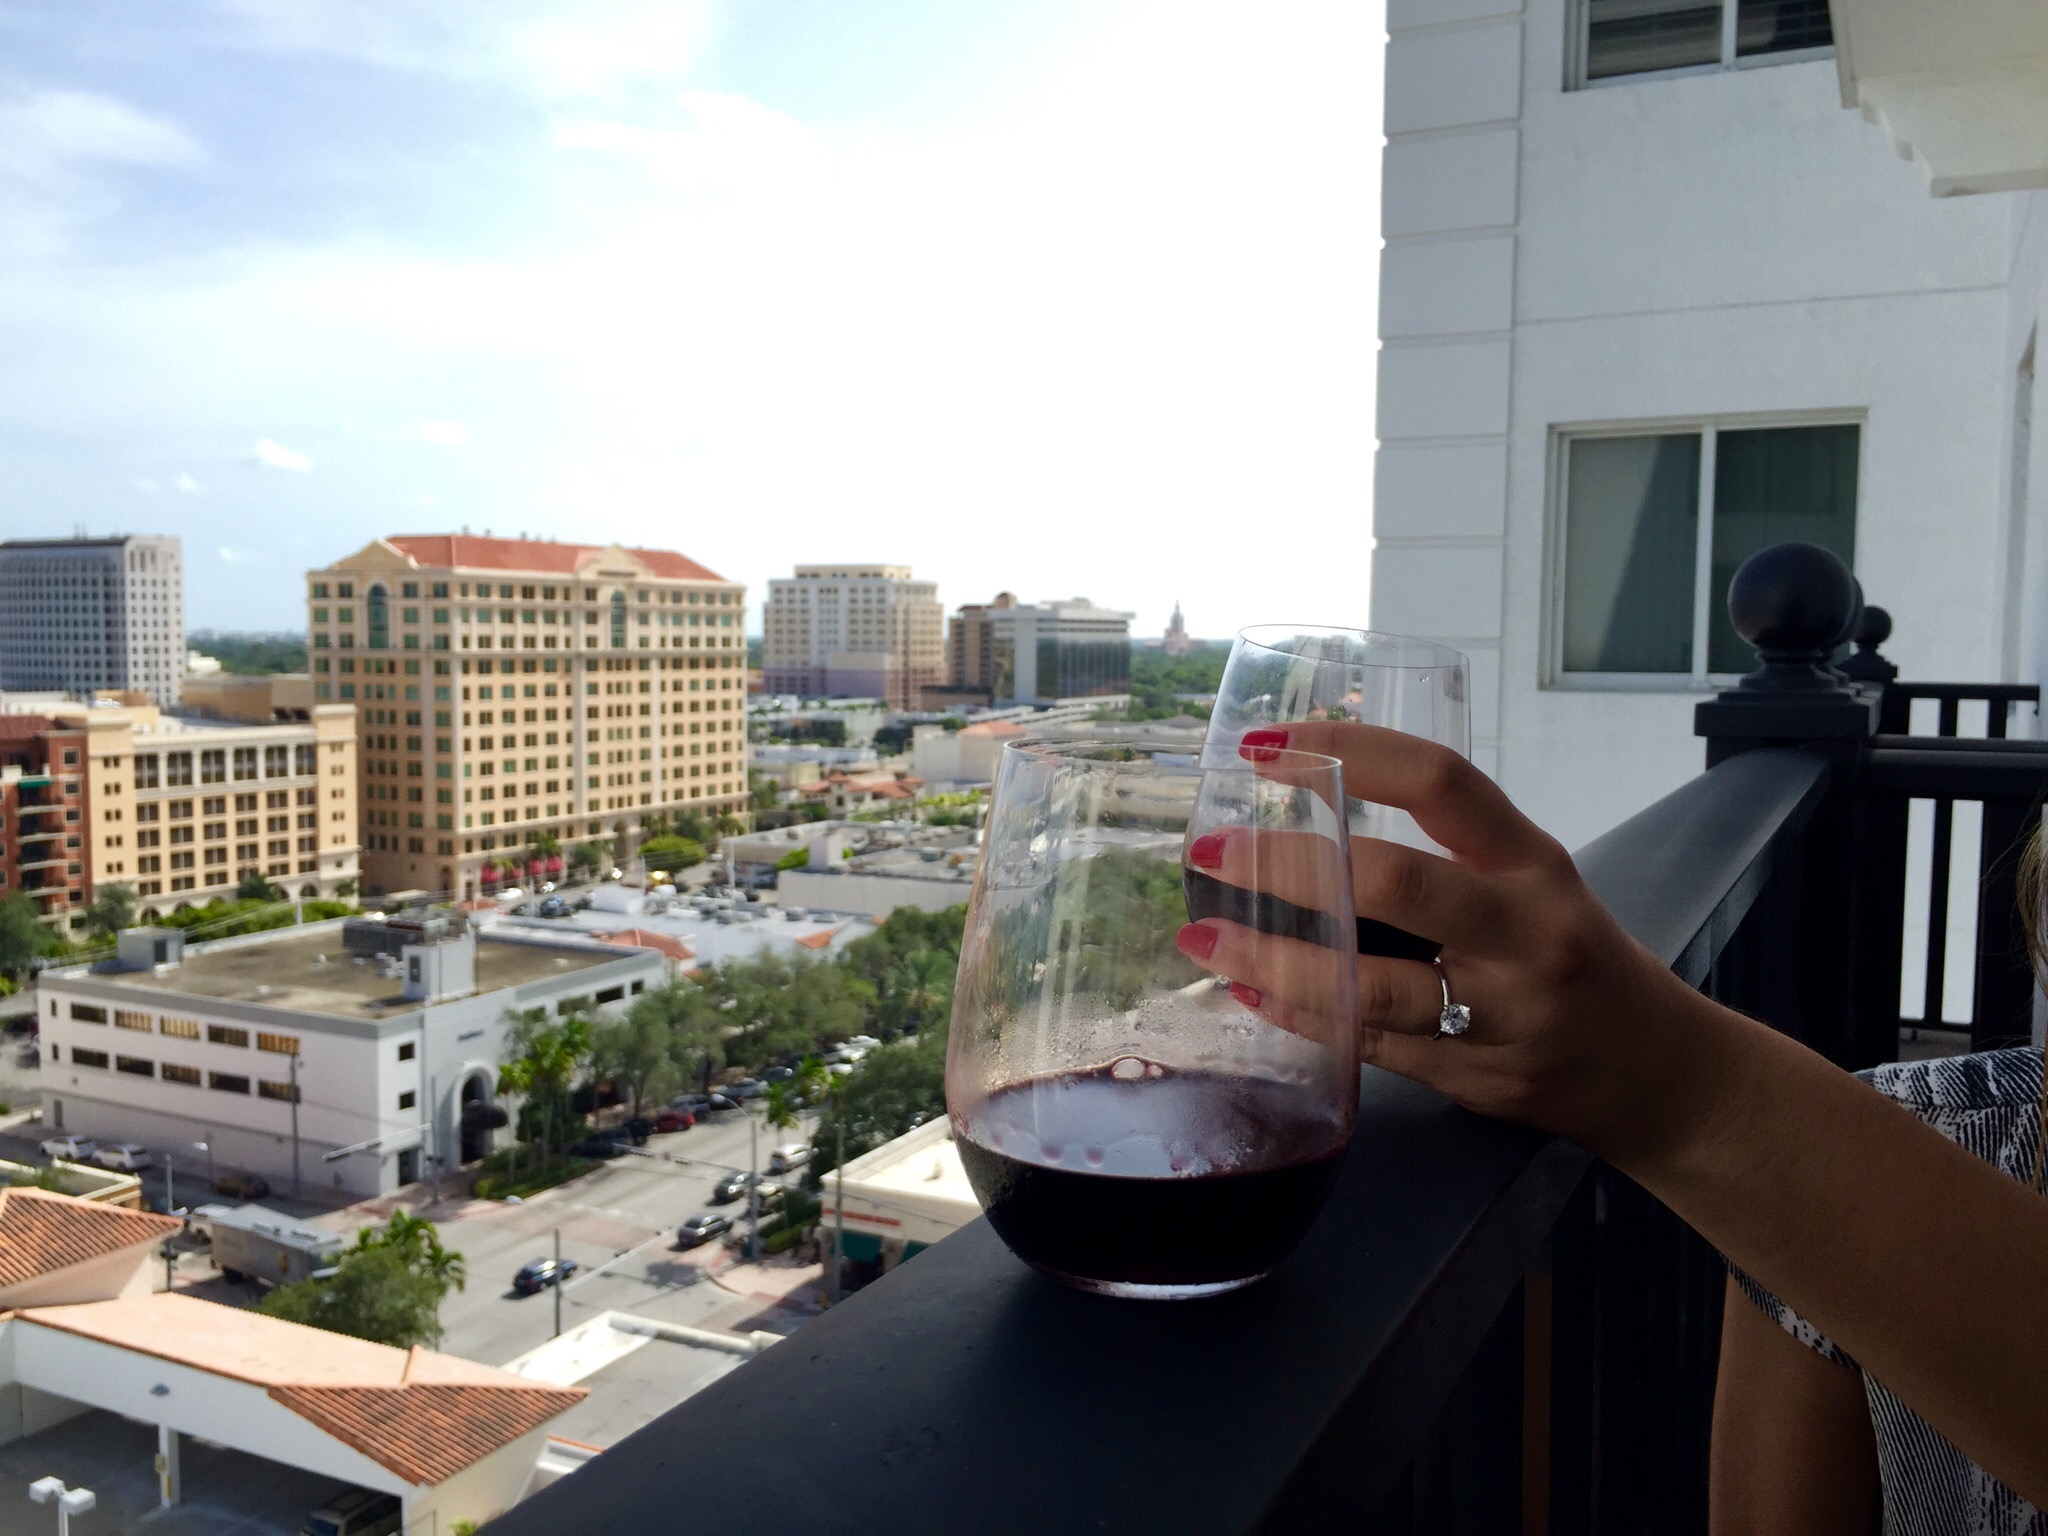 Cheers from our balcony!